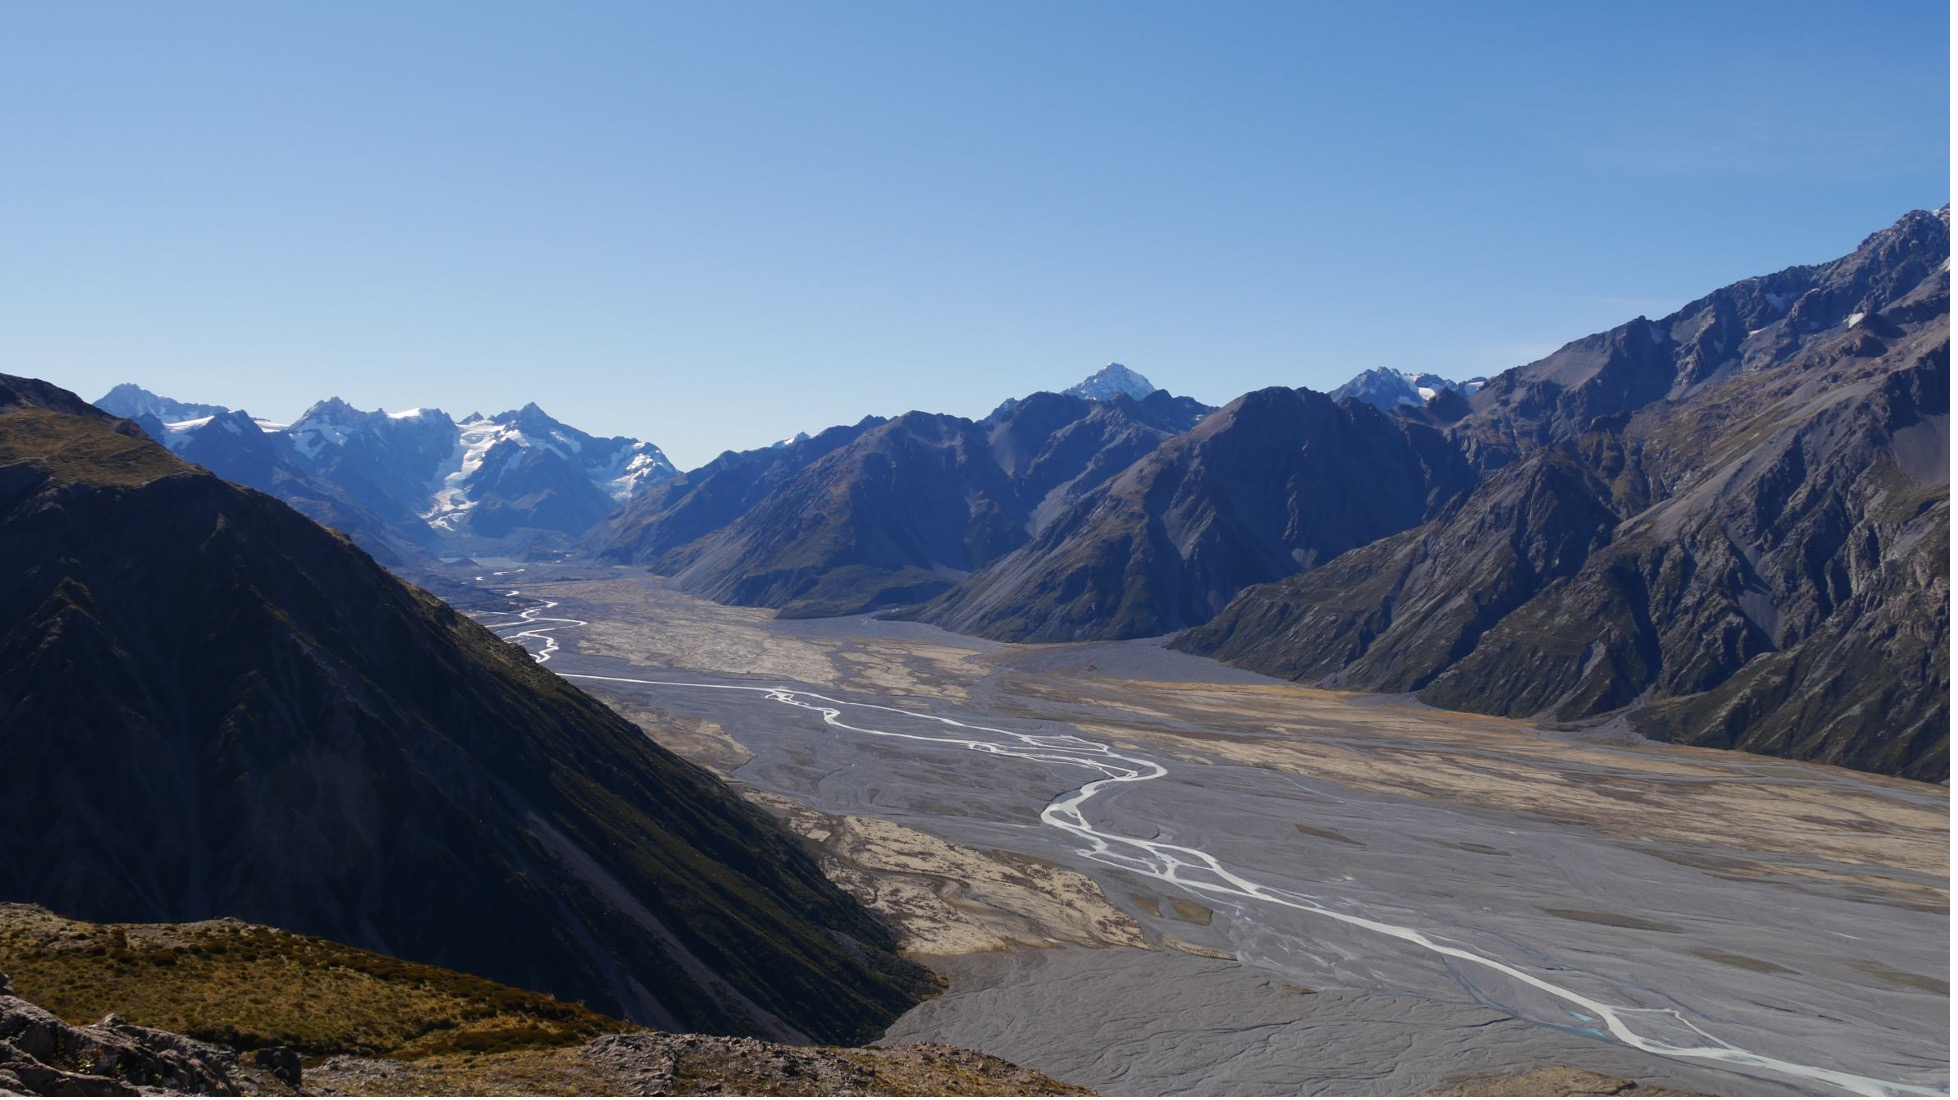 Godley glacier and river in New Zealand's Southern Alps